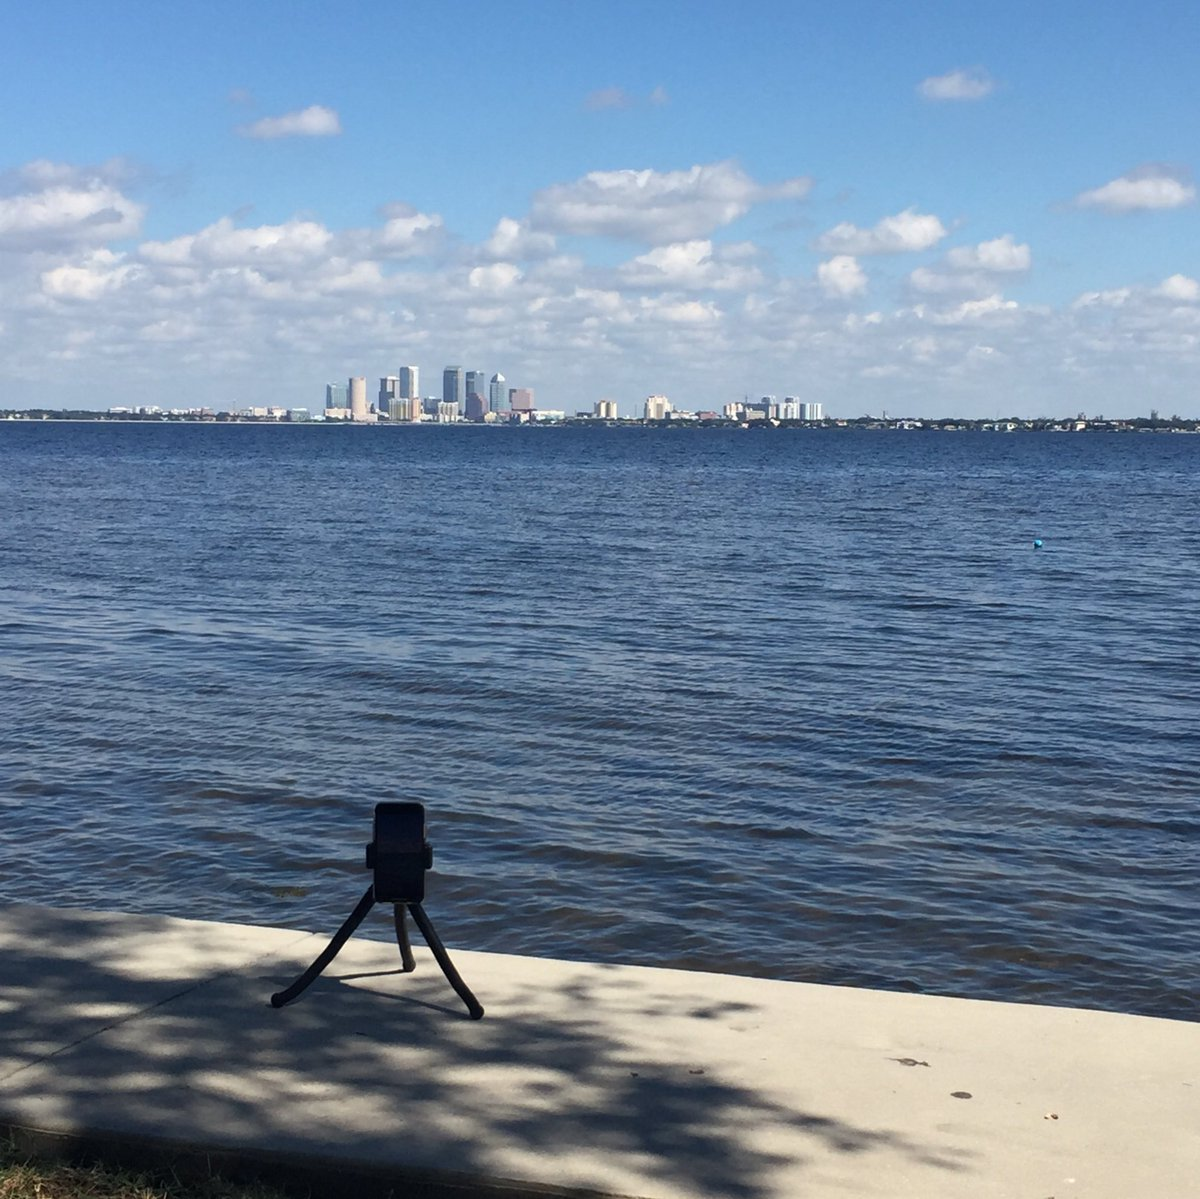 Working on a cool #timelapse video. #tampa #iPhoneX